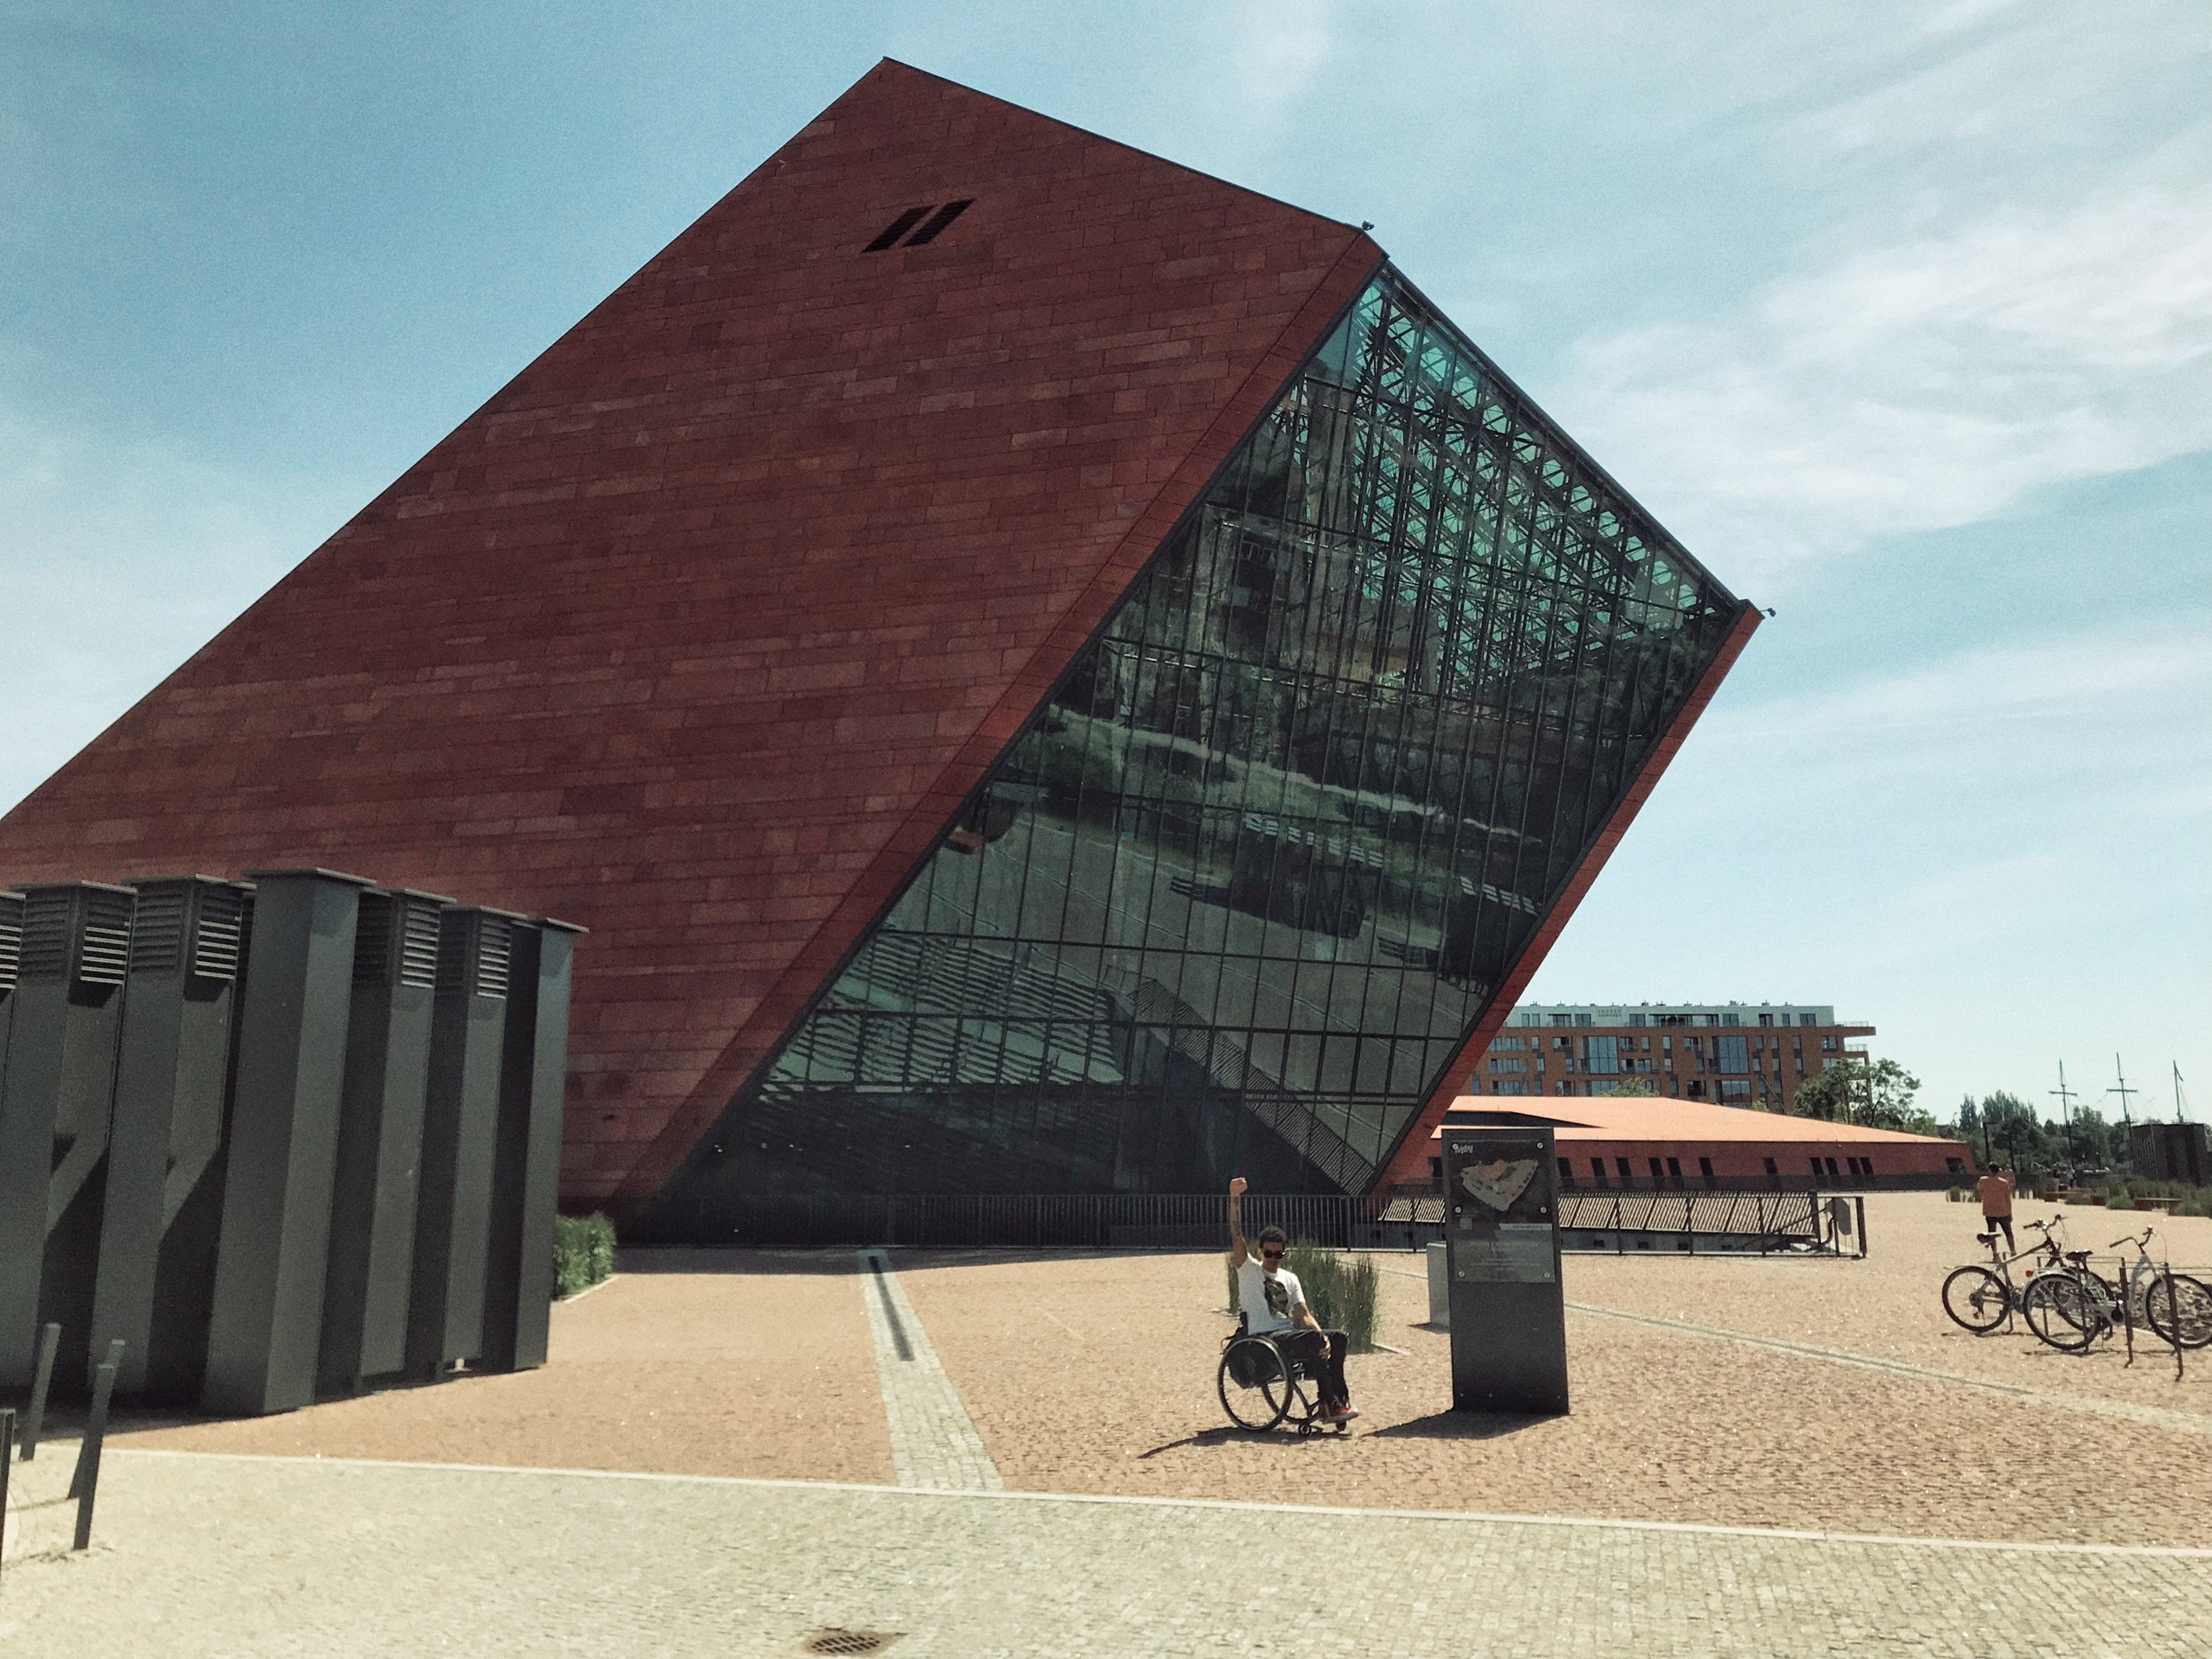 An angled tower wrapped in red concrete panels and glazing contains the entrance to this Second World War Museum which is mostly housed beneath the surface of a public plaza in the Polish city of Gdansk.